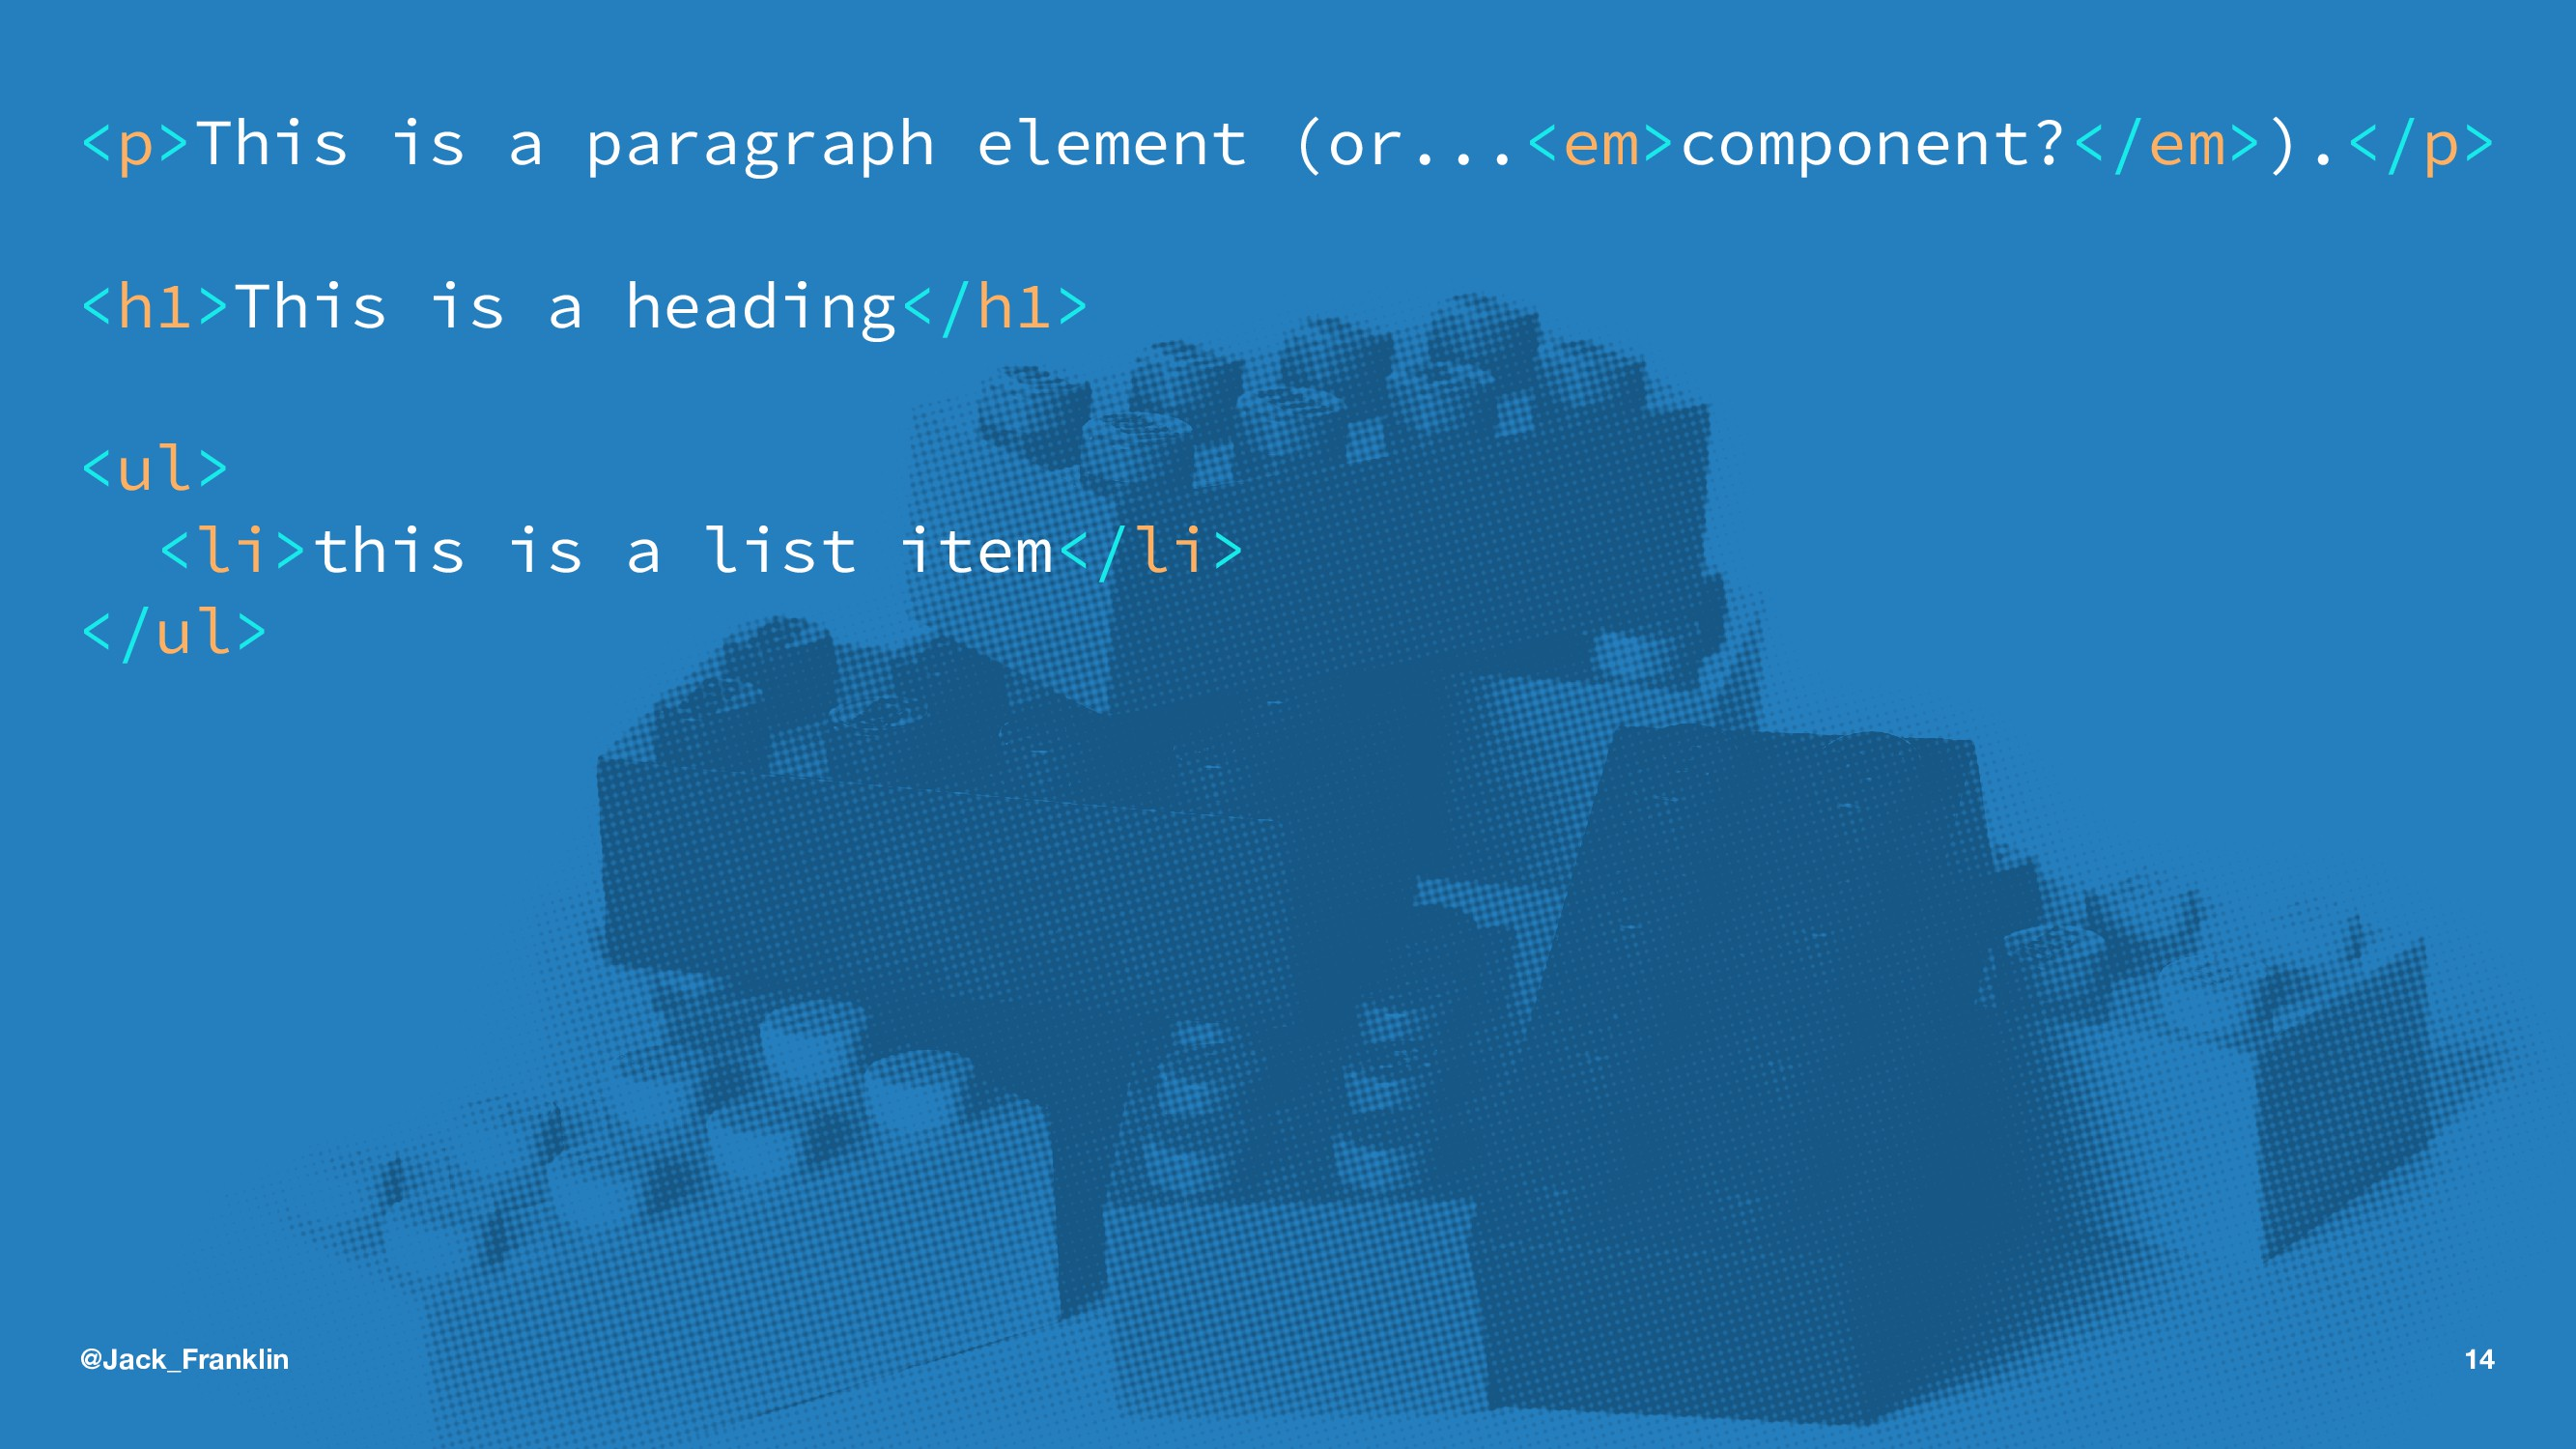 <p>This is a paragraph element (or...<em>compon...